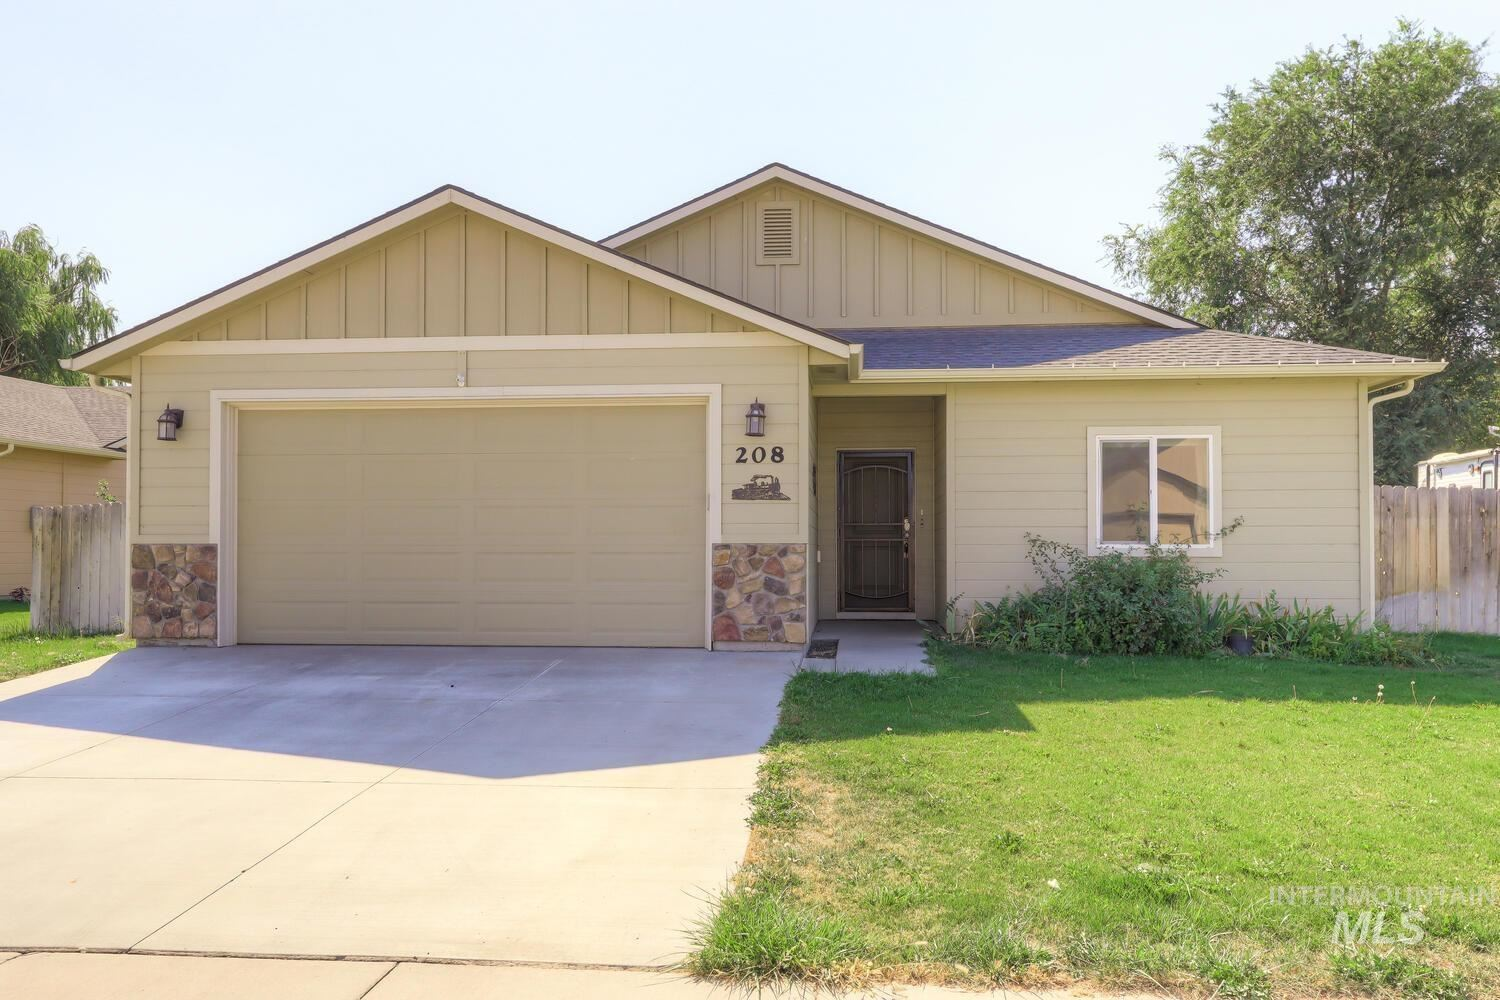 Photo of 208 Union Pacific, Homedale, ID 83628 (MLS # 98819282)